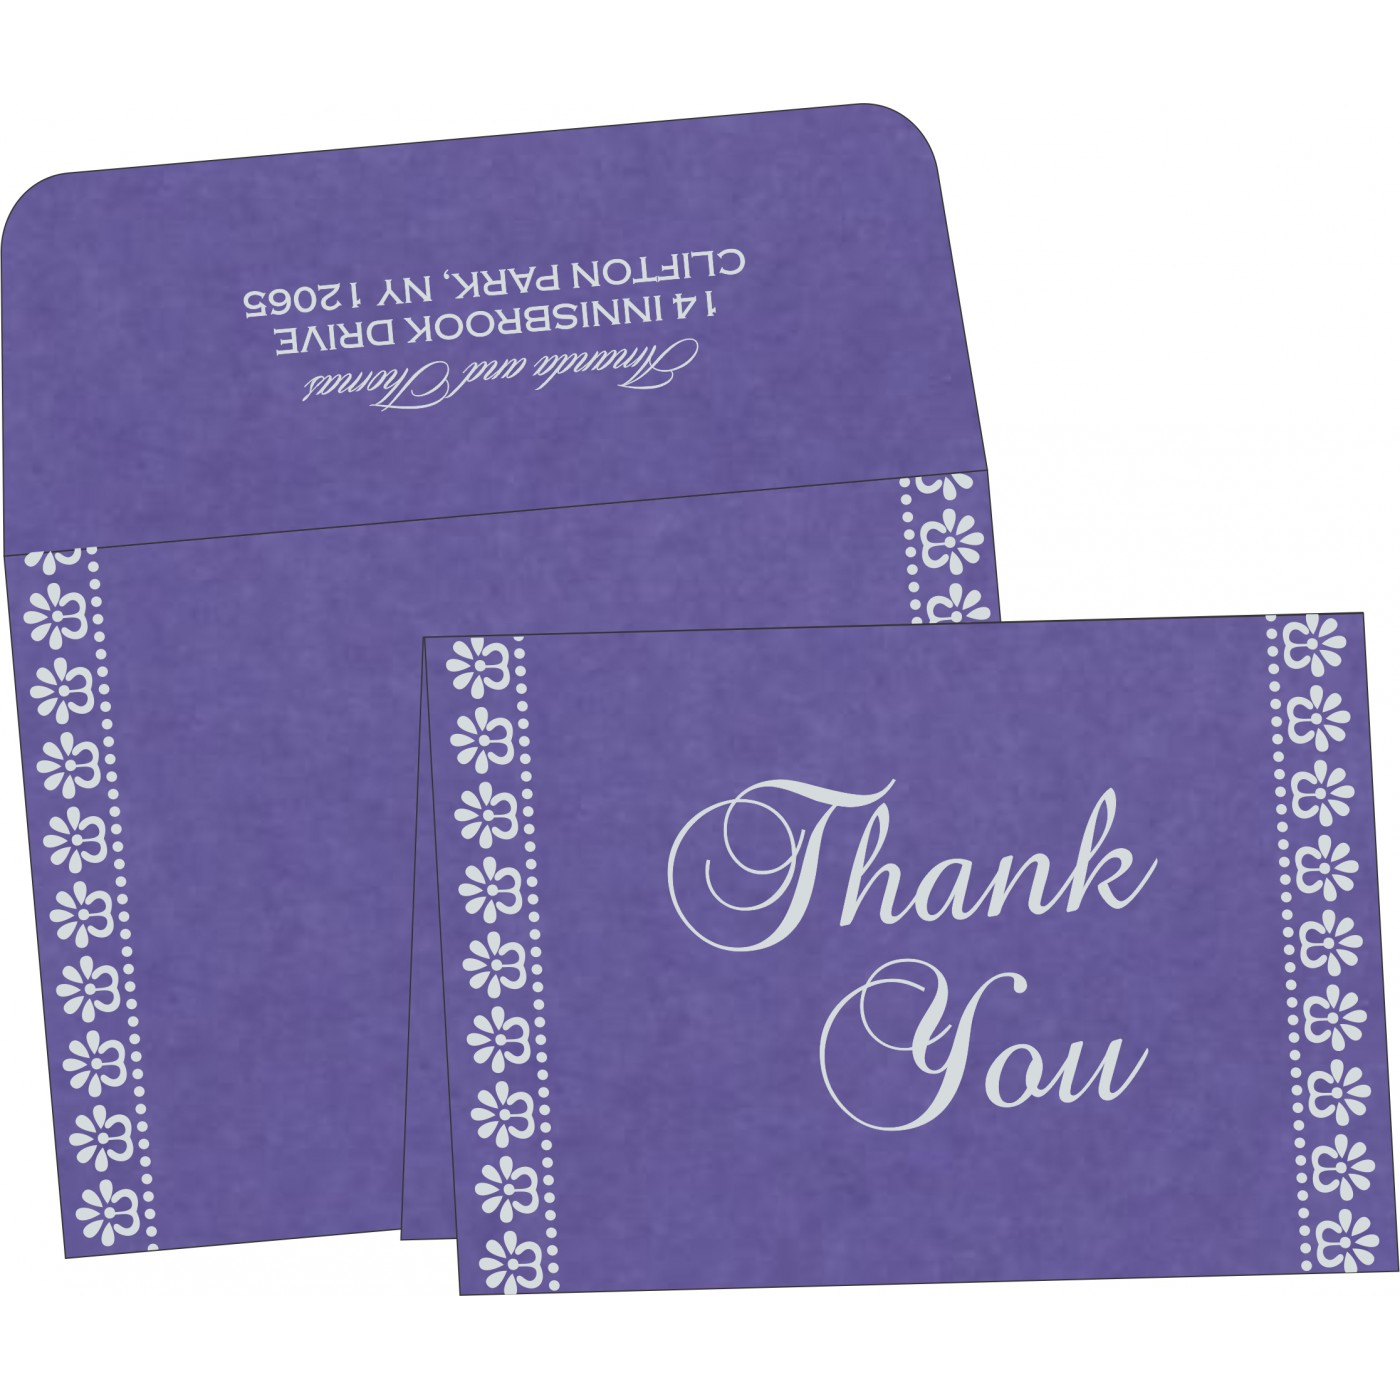 Thank You Cards - TYC-8231K